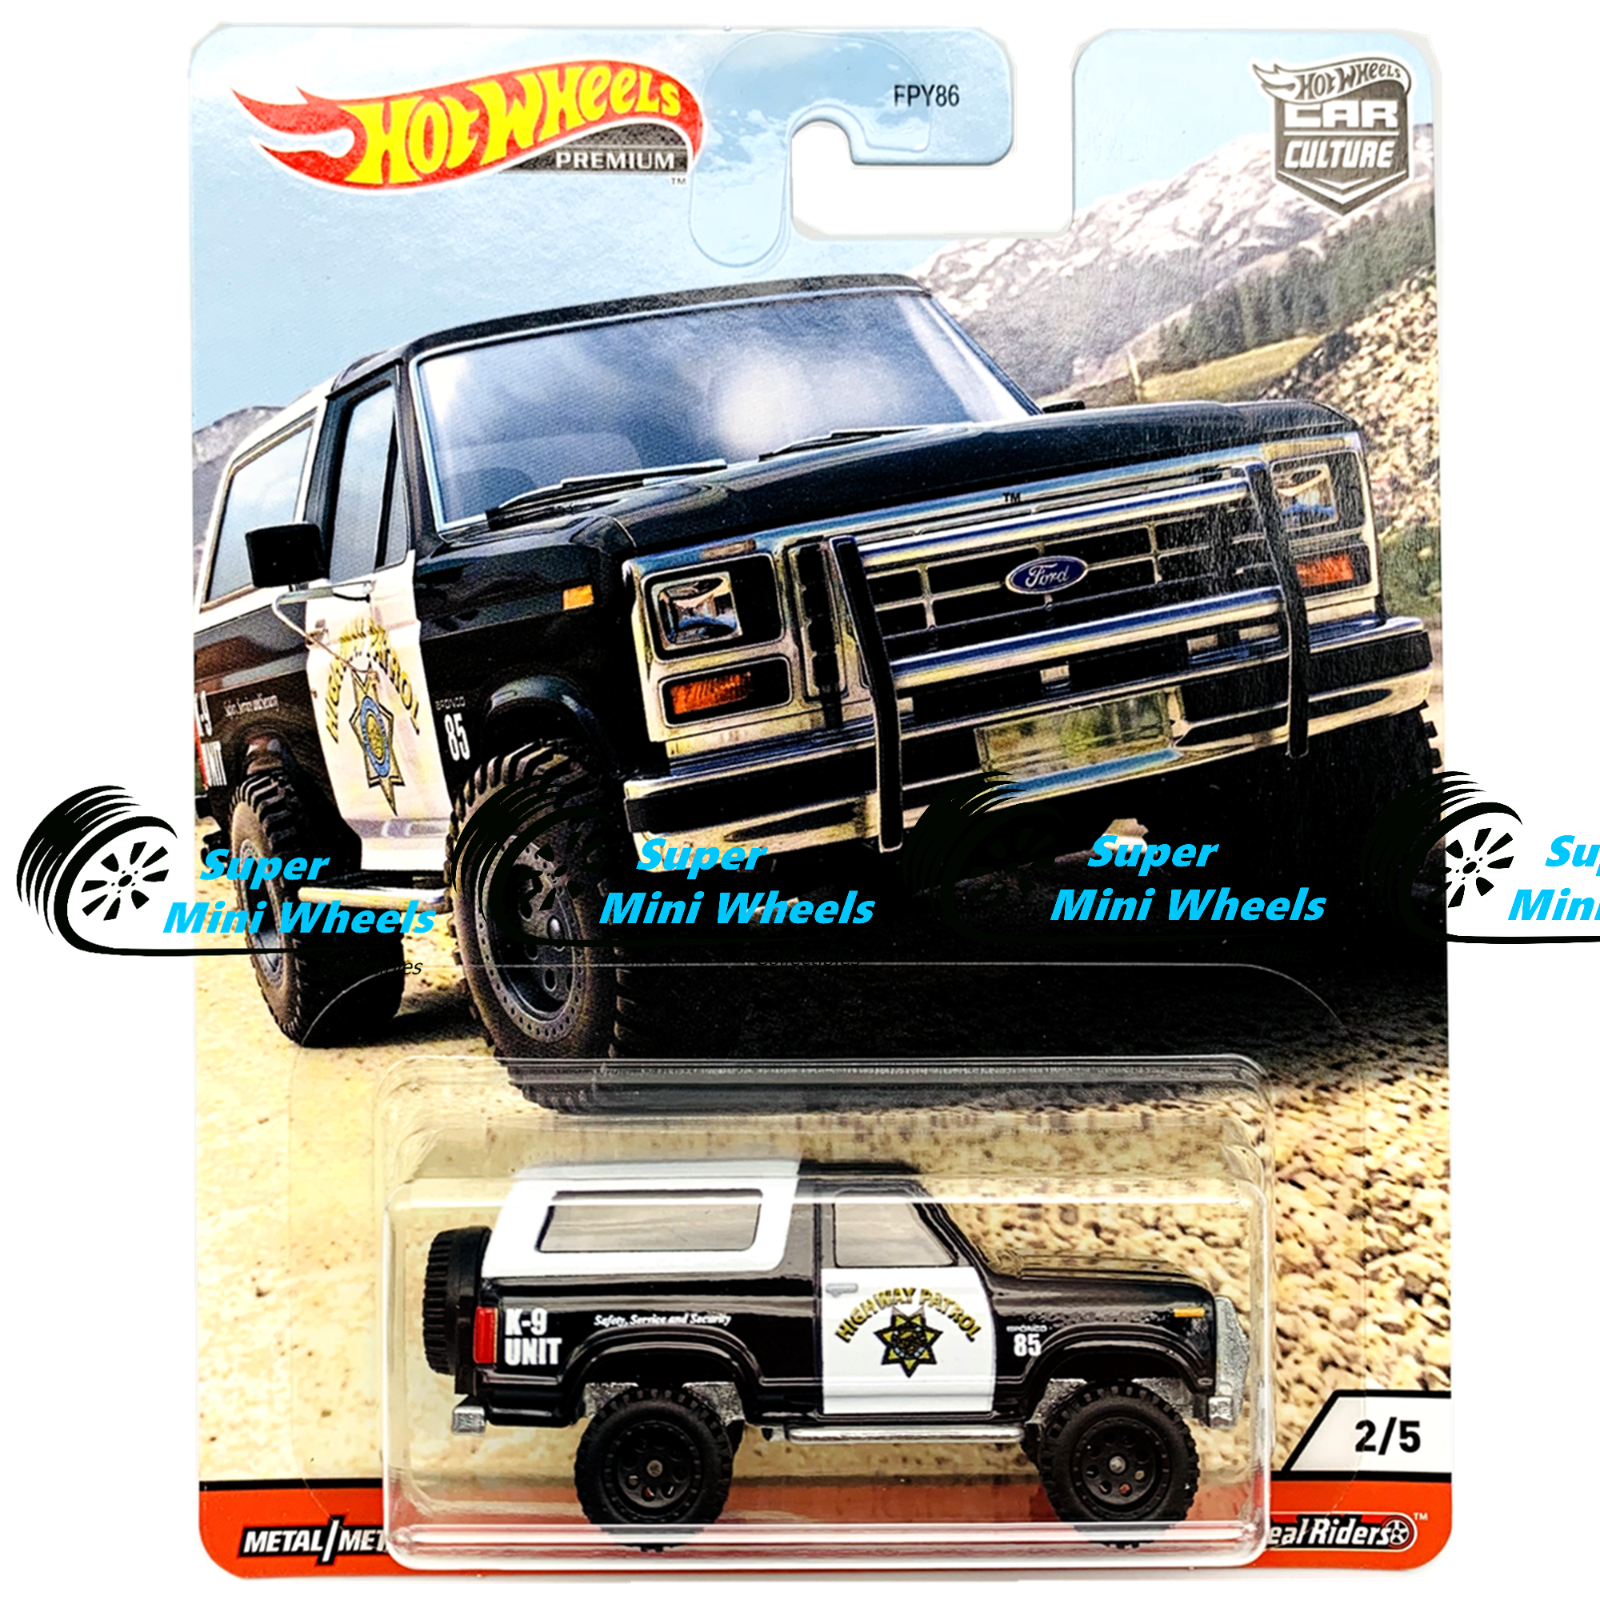 Hot Wheels Premium 2020 Car Culture Q Case All Terrain Wild Terrain - 5 Cars Set 3